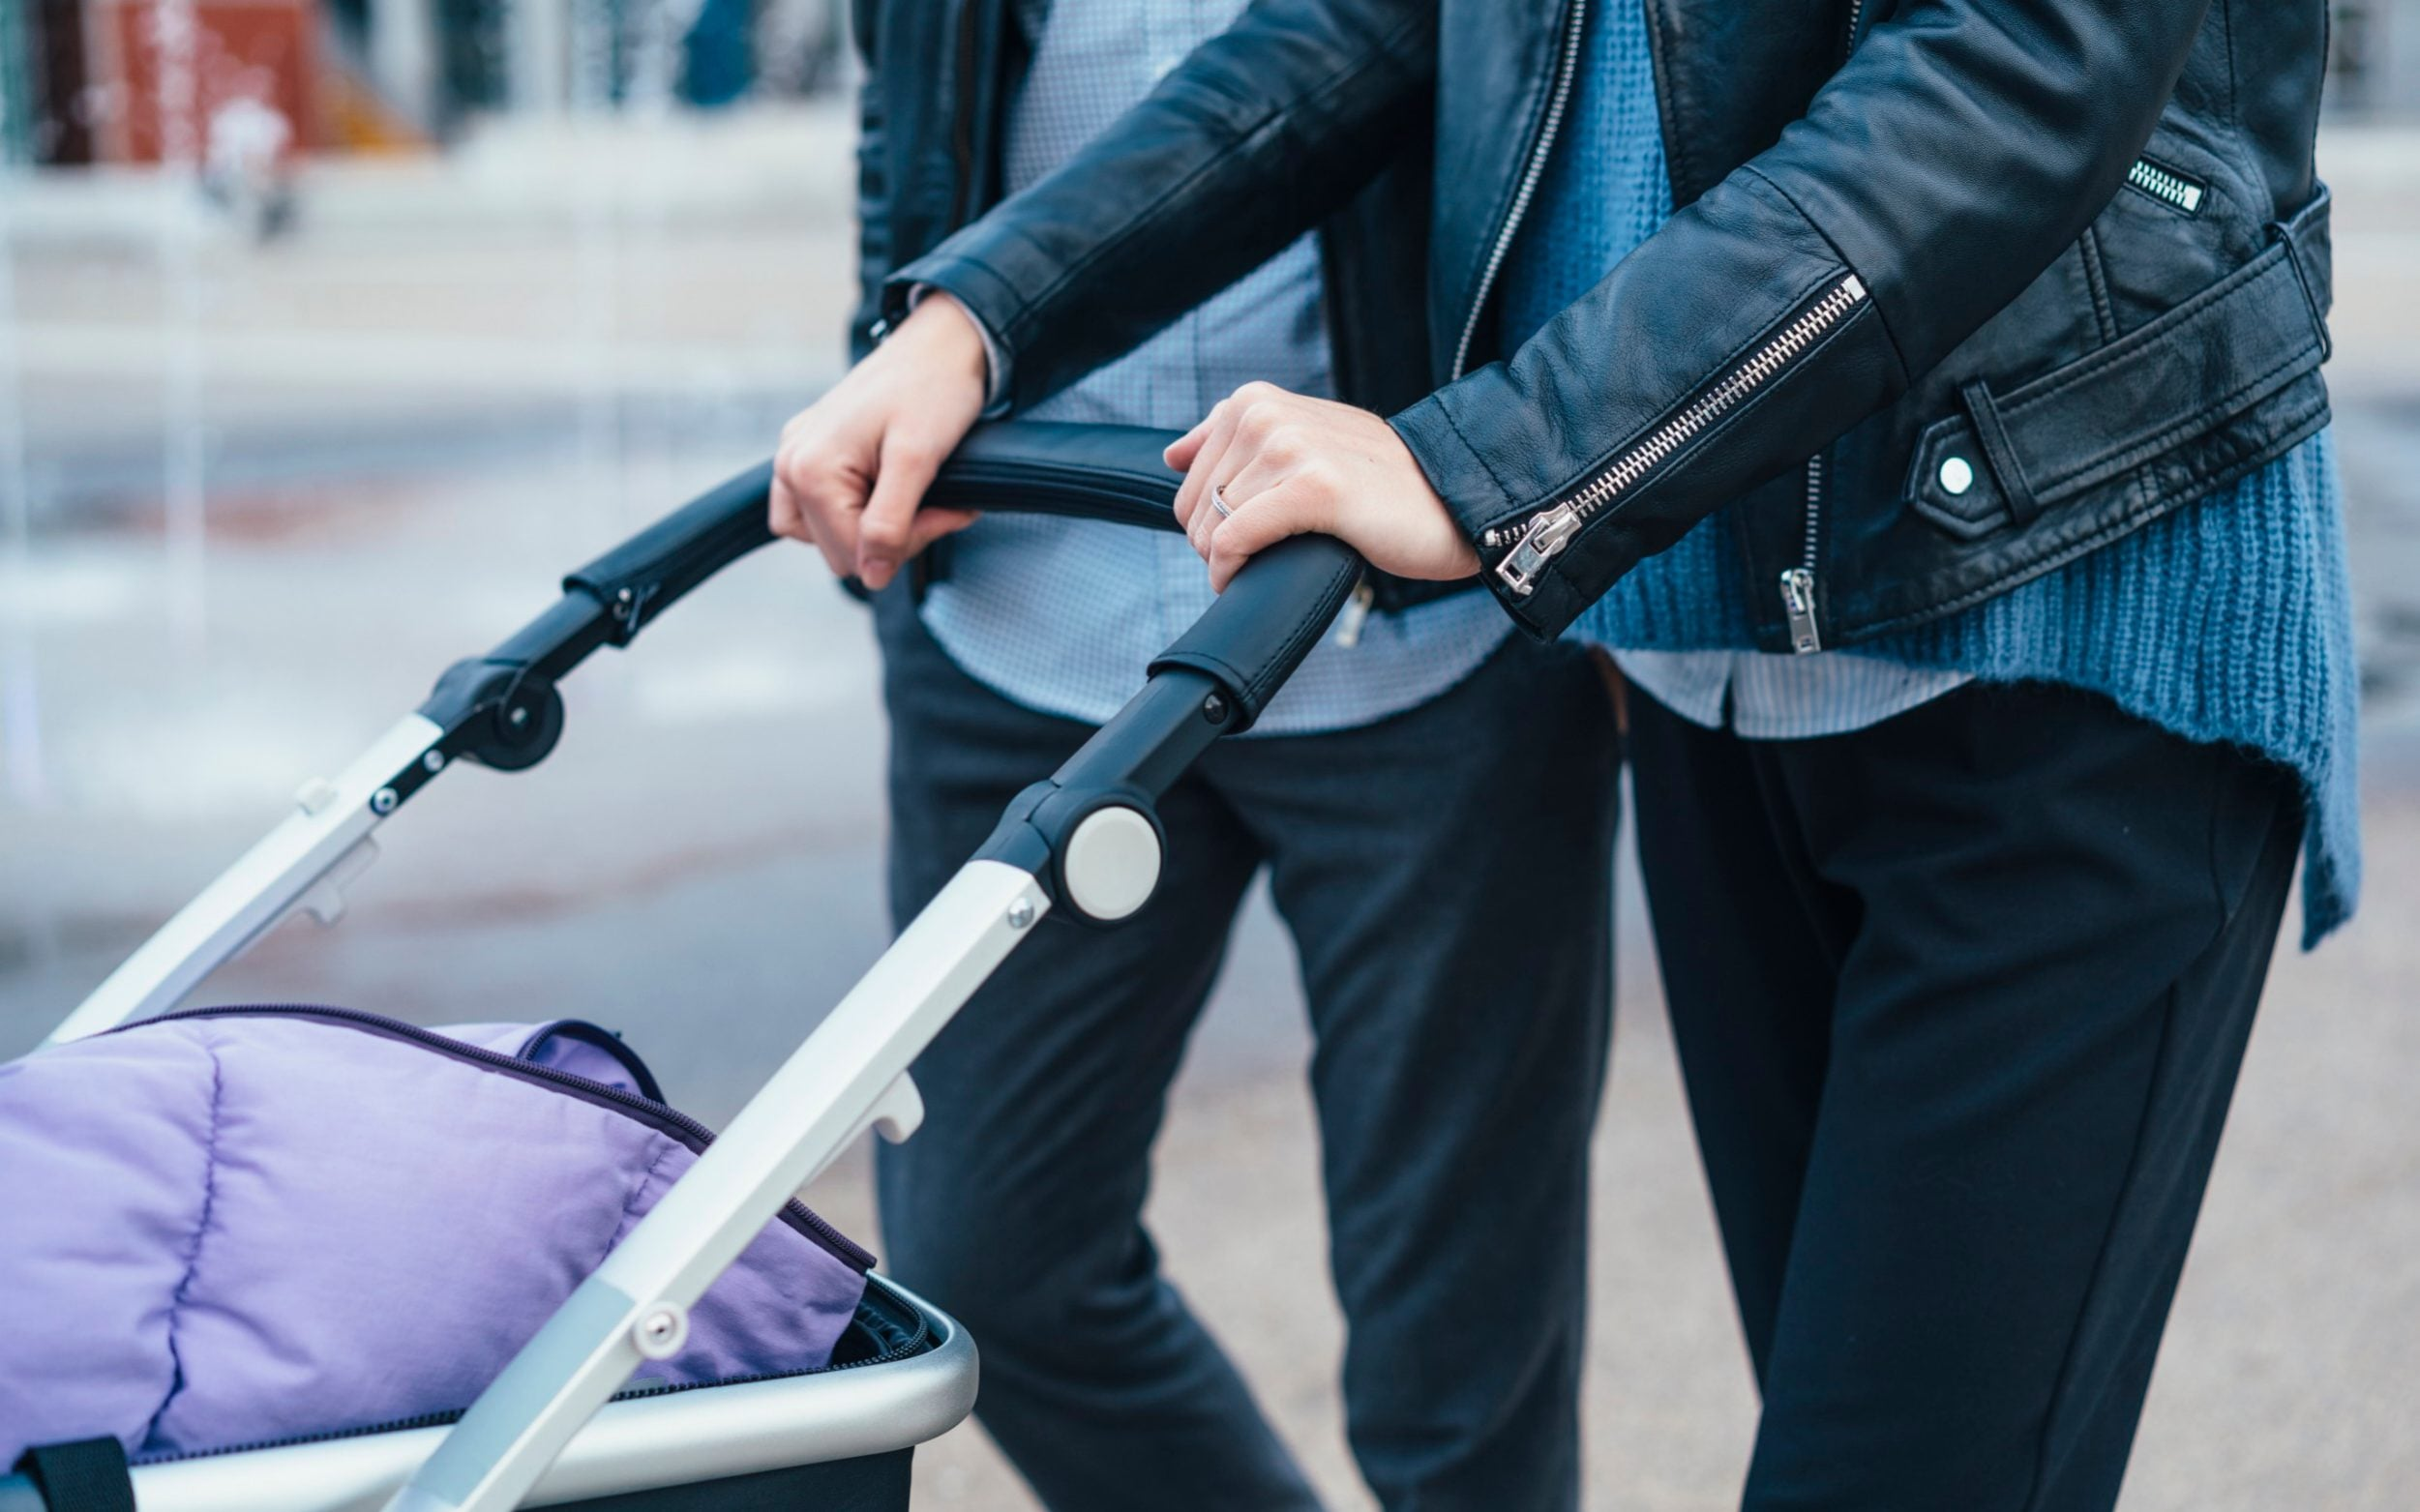 Stokke Stroller Store 10 Of The Best Prams Buggies And Pushchairs According To